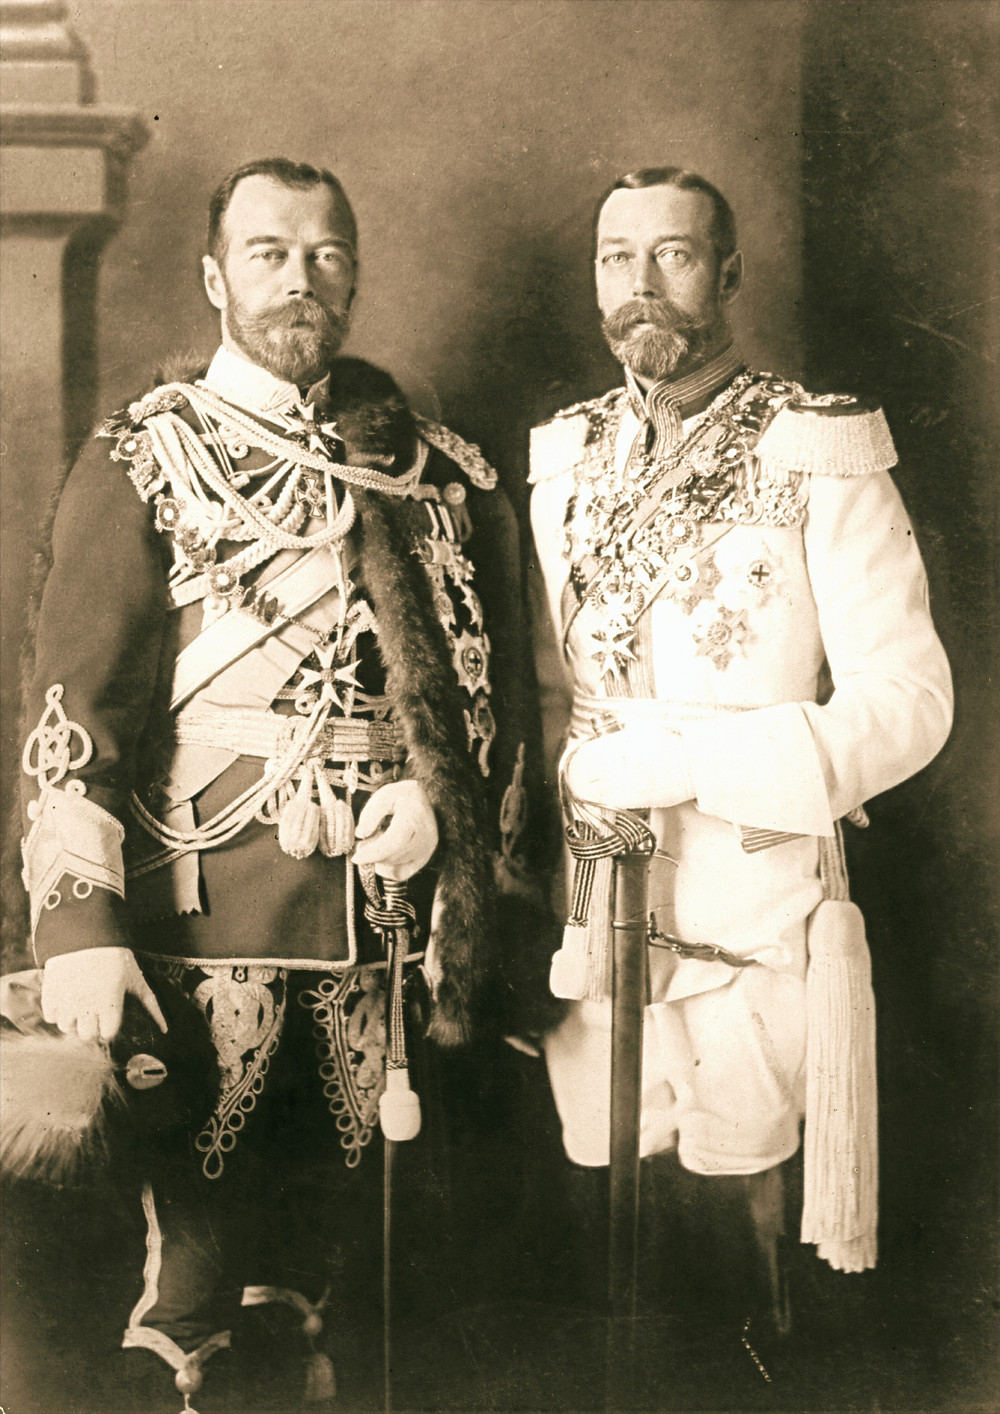 George V (right) and his physically similar cousin Nicholas II of Russia in German uniforms before the war[